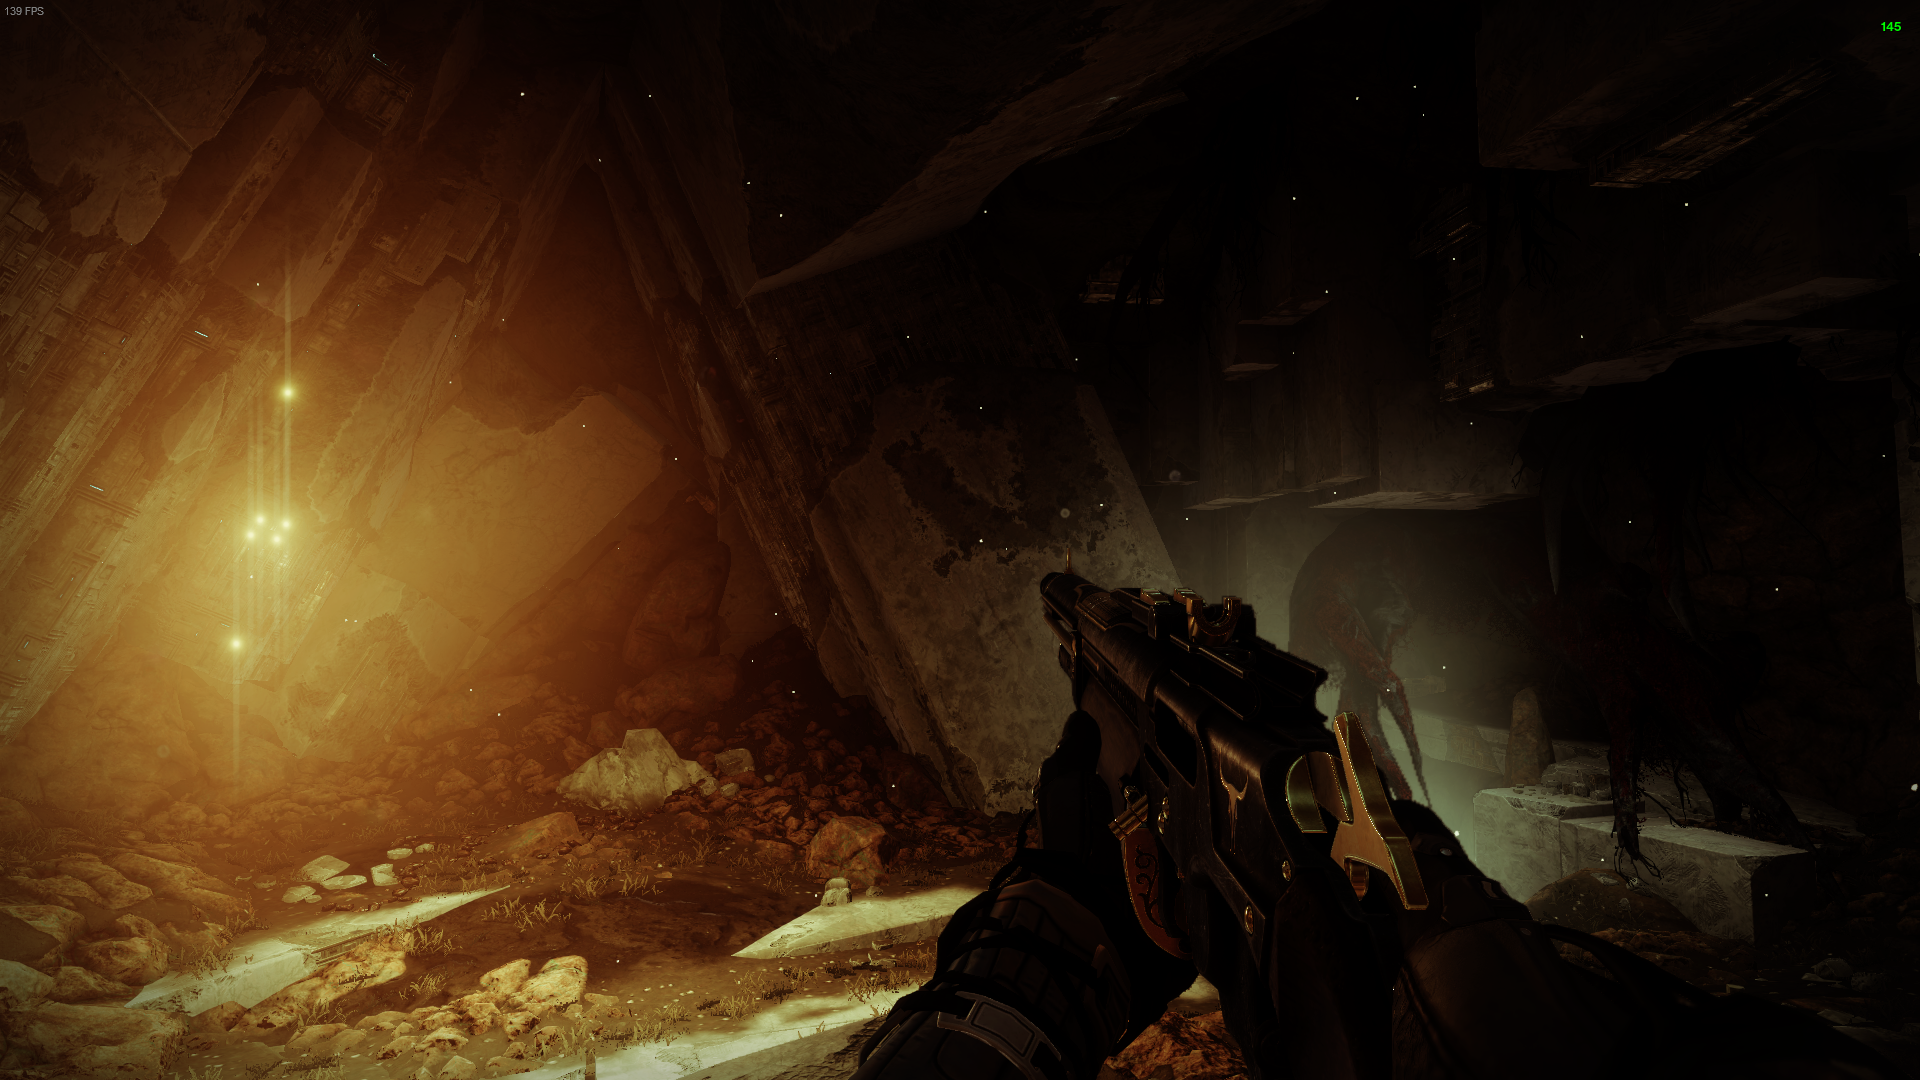 Motes of bright yellow dust cascade from the ceiling. A cluster of six lights in the wall shine bright enough to cause a glare, bathing the entire underground scene.